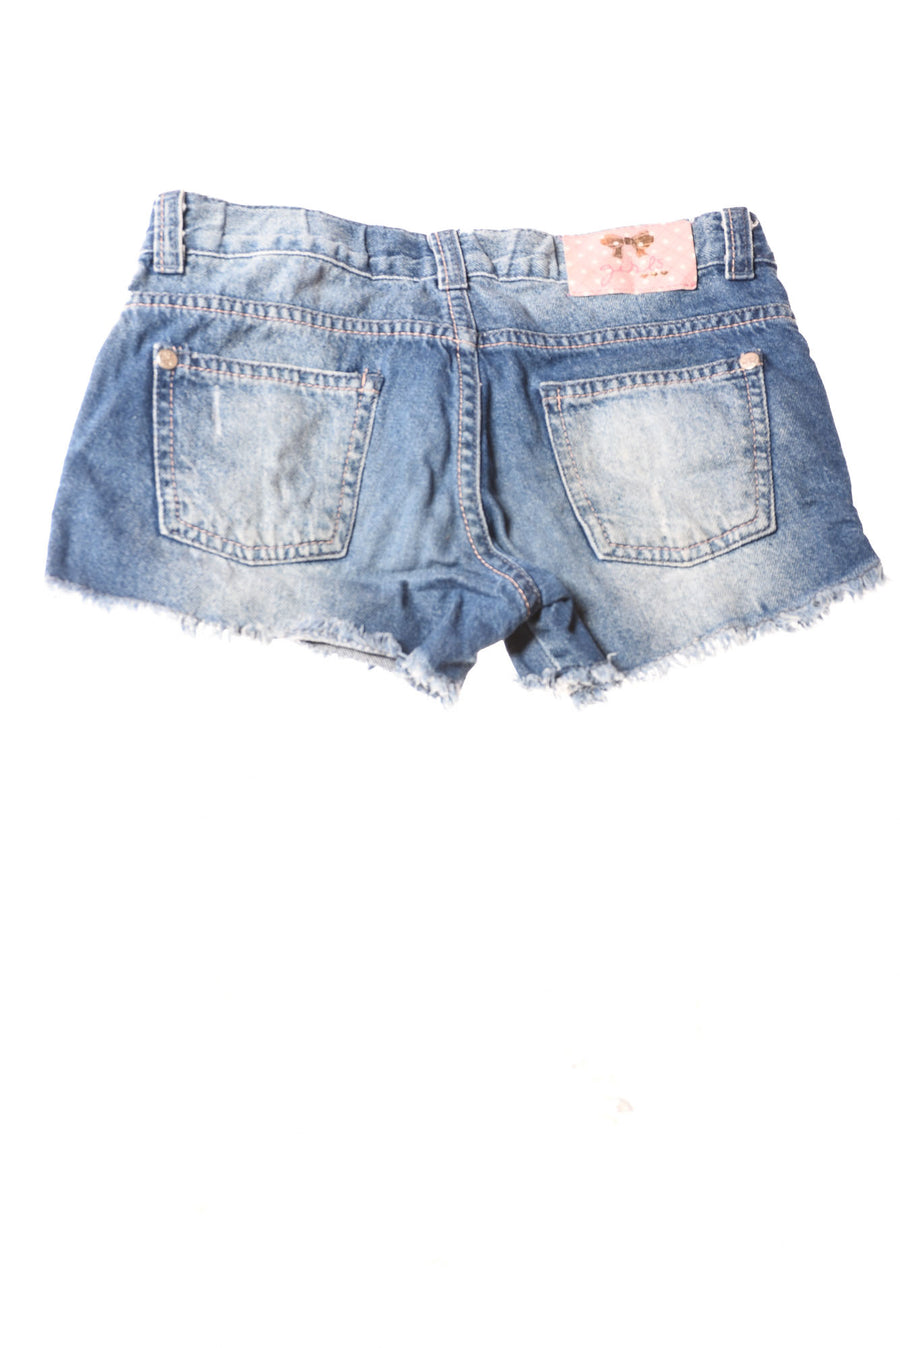 USED Denim Girl's Girl's Shorts 10 Blue / Print